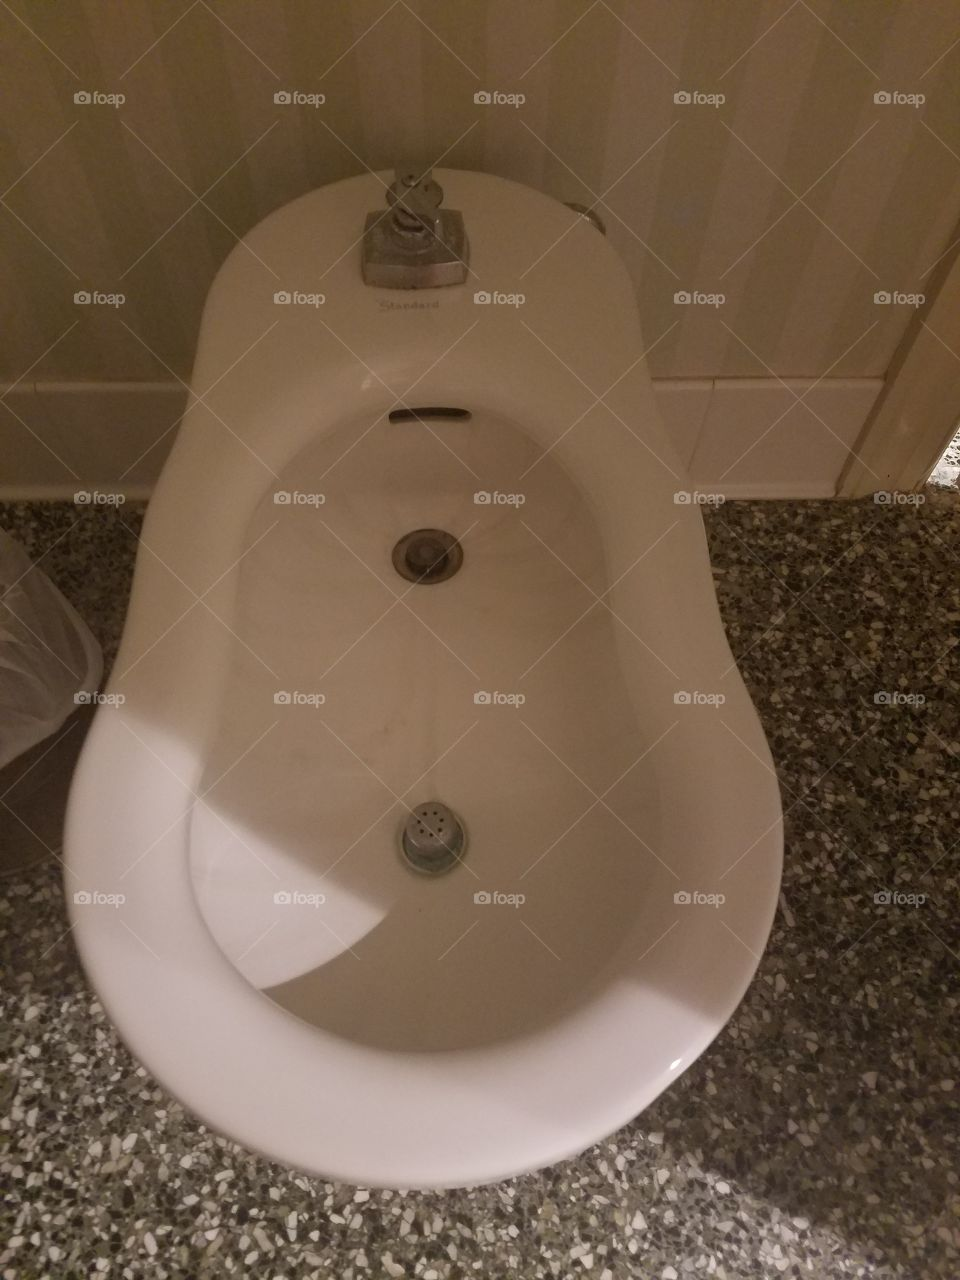 so this is what a bidet looks like